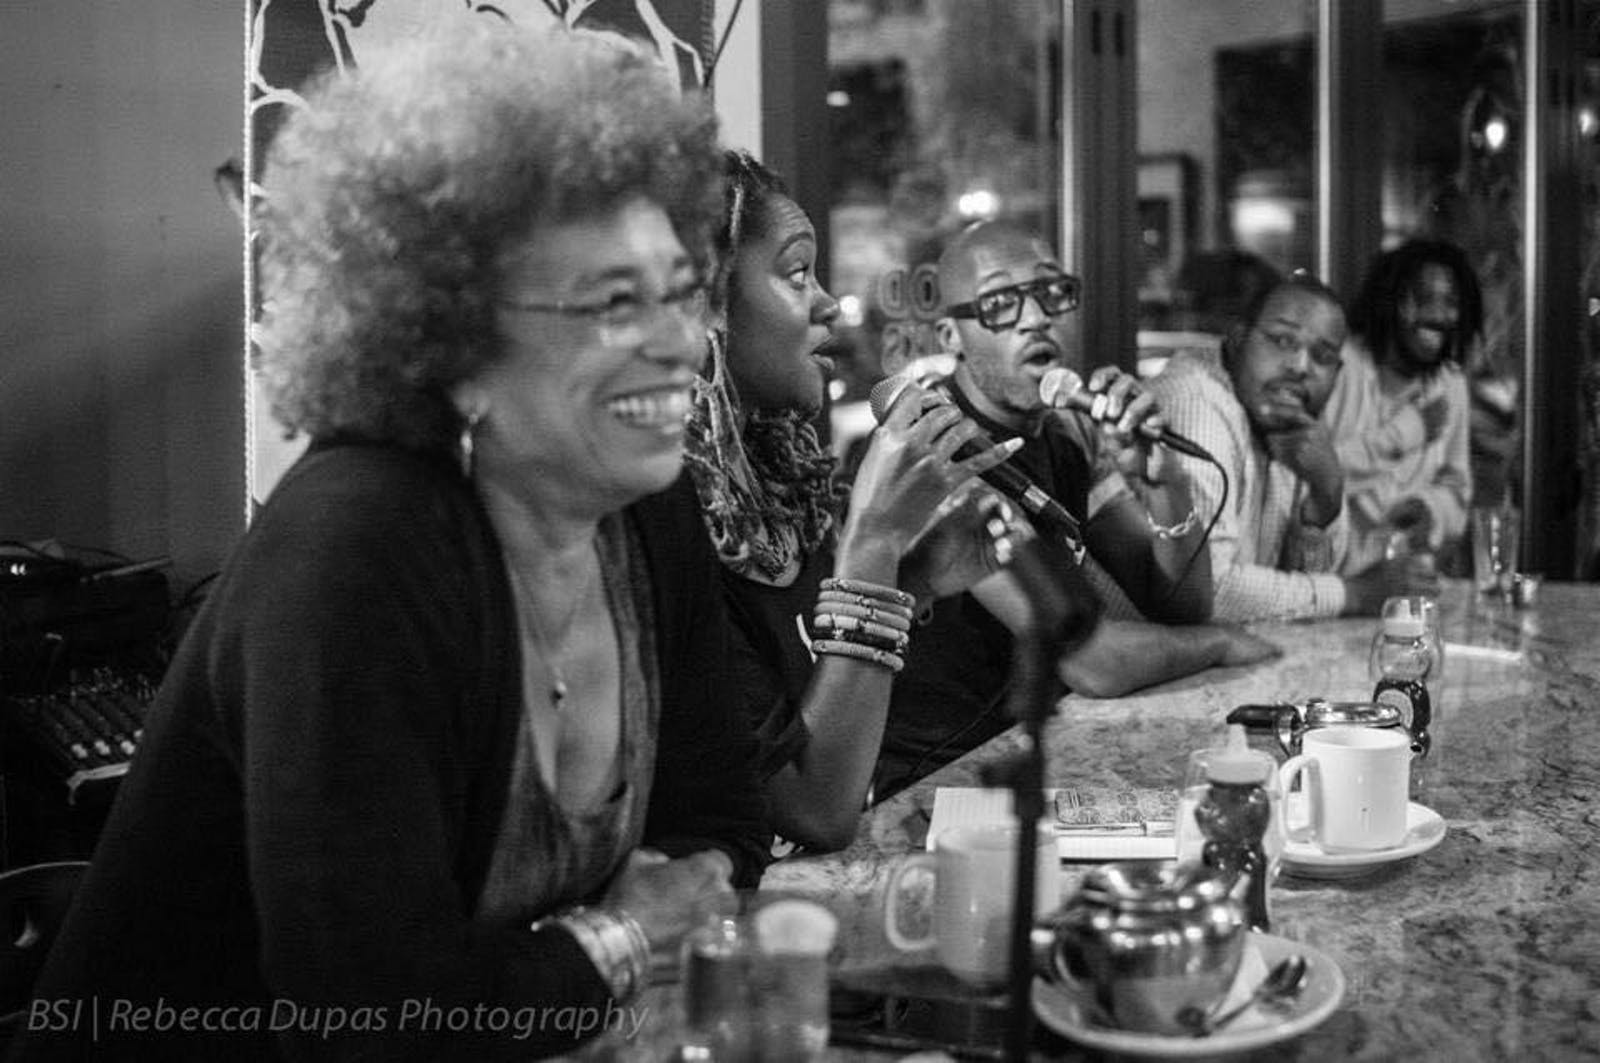 WATCH: BLM Panel Discussion with Angela Davis ft. Erika Totten